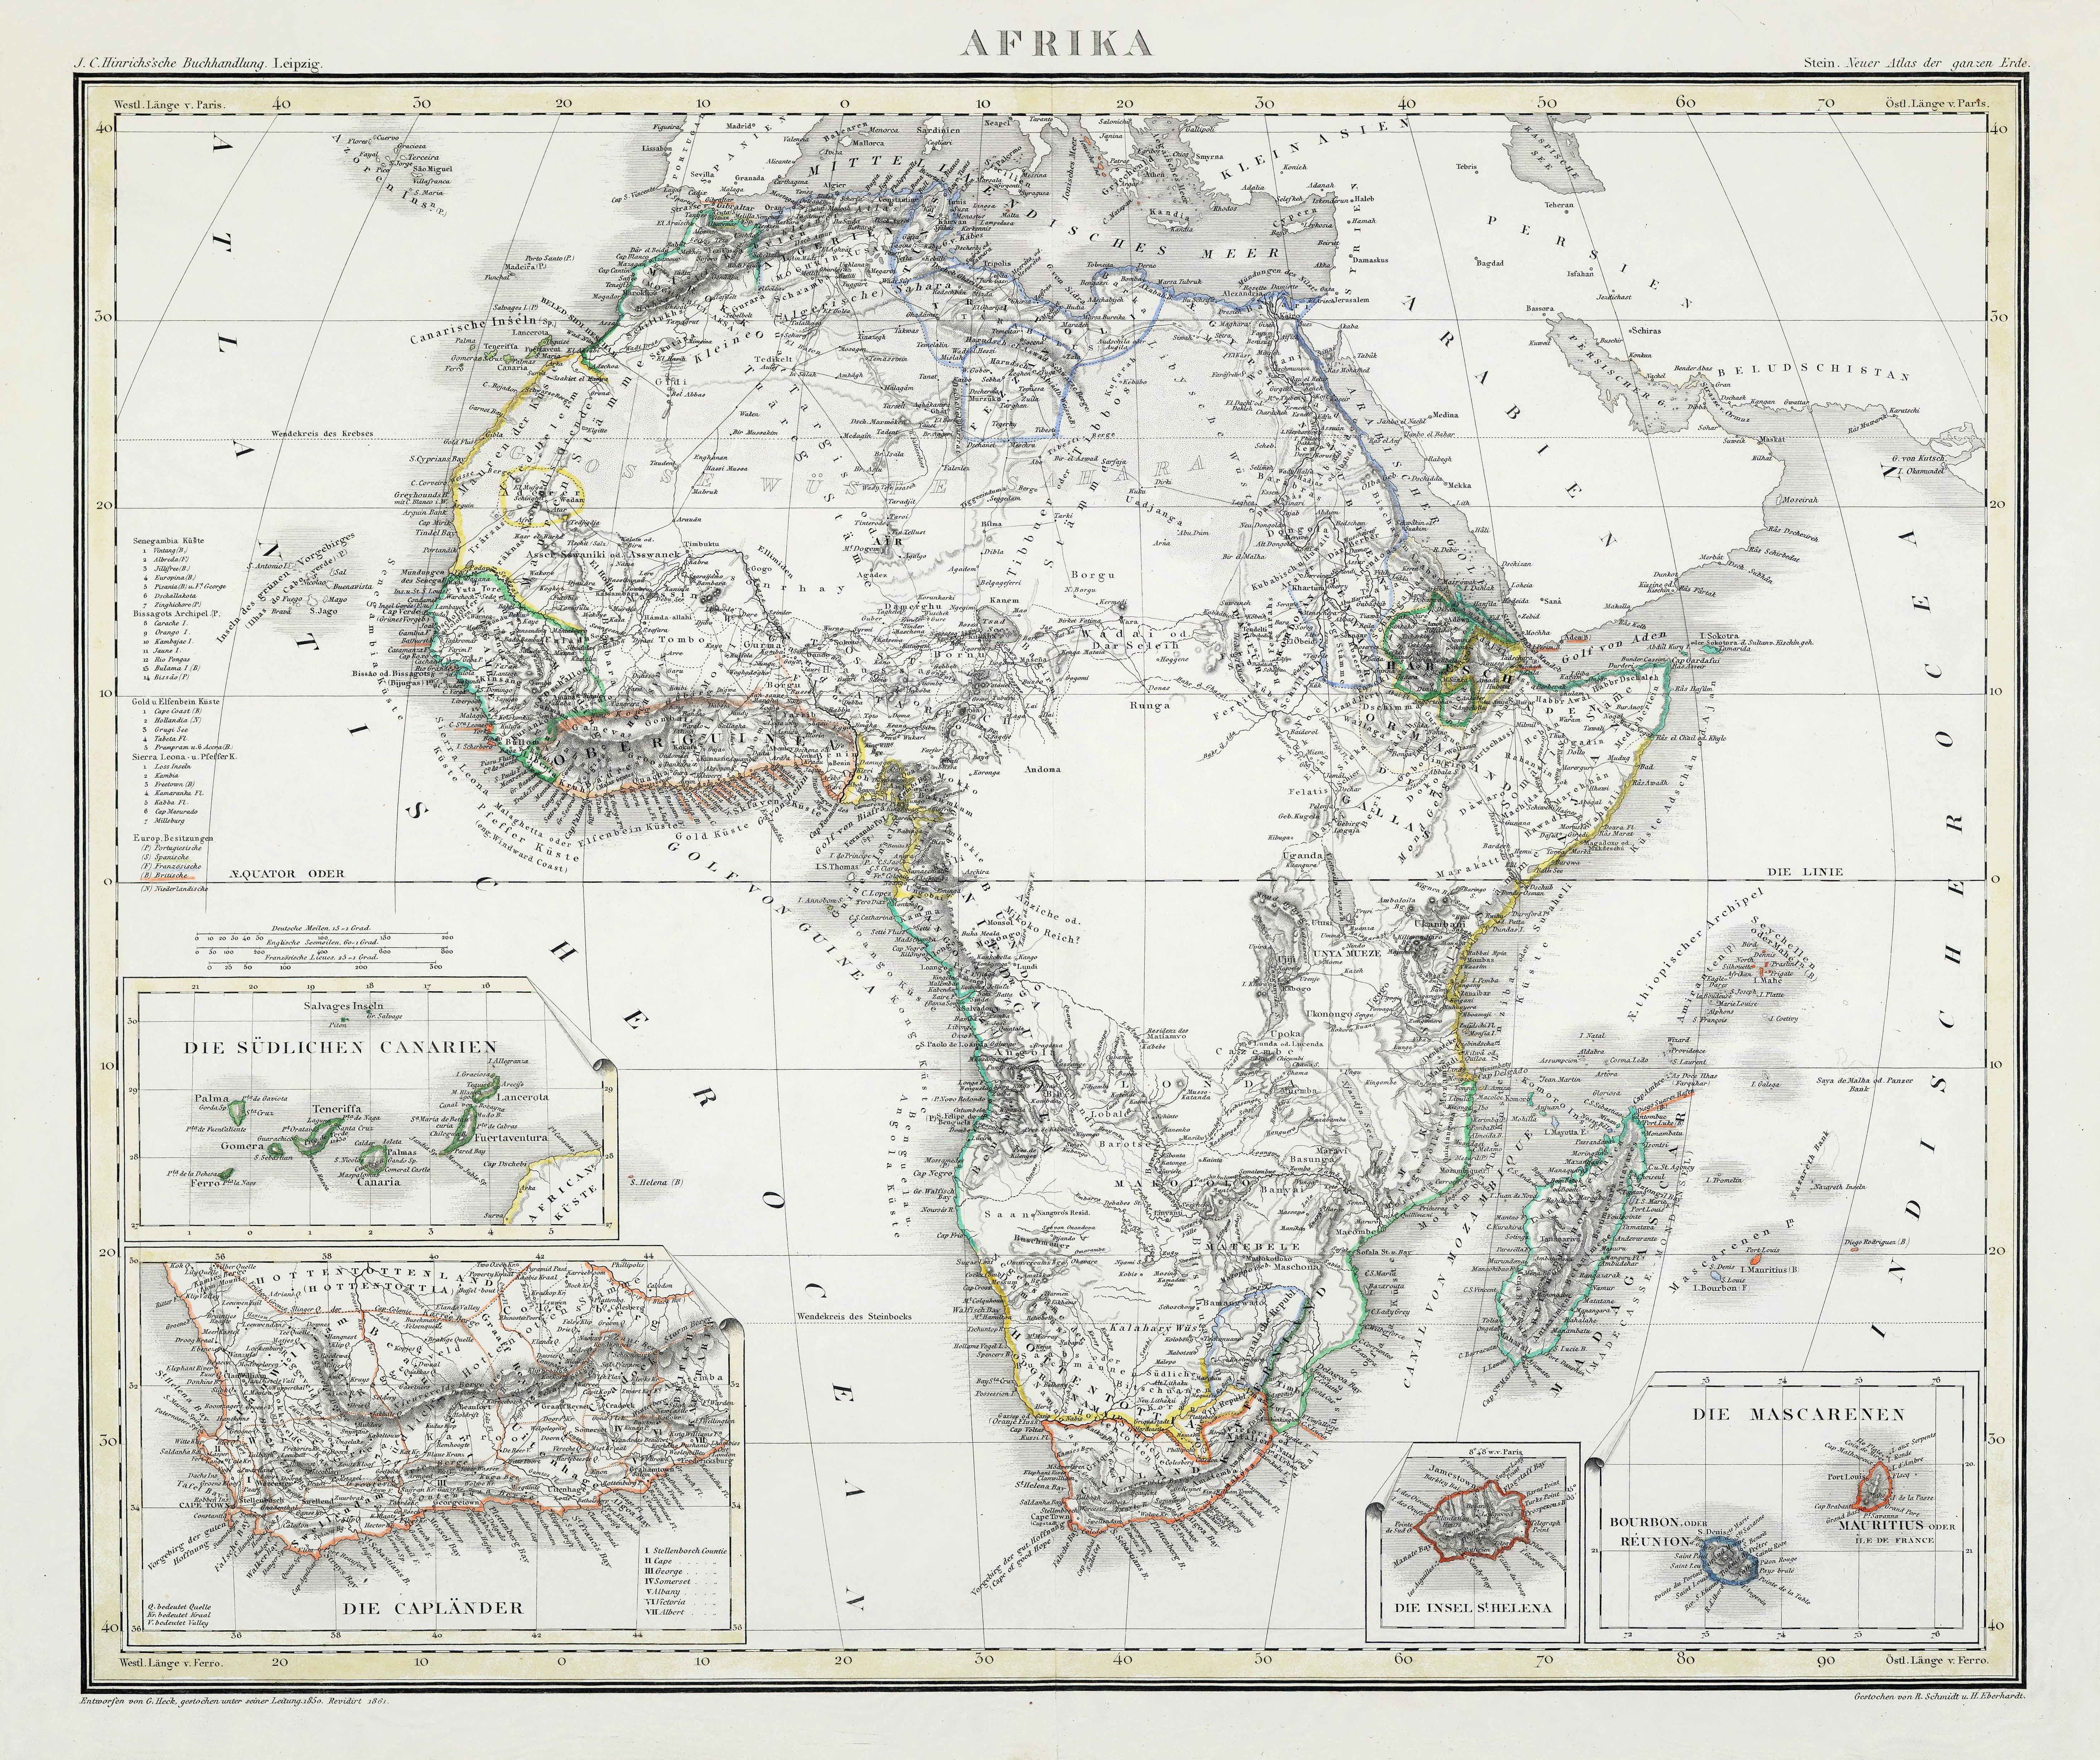 Africa in 1861